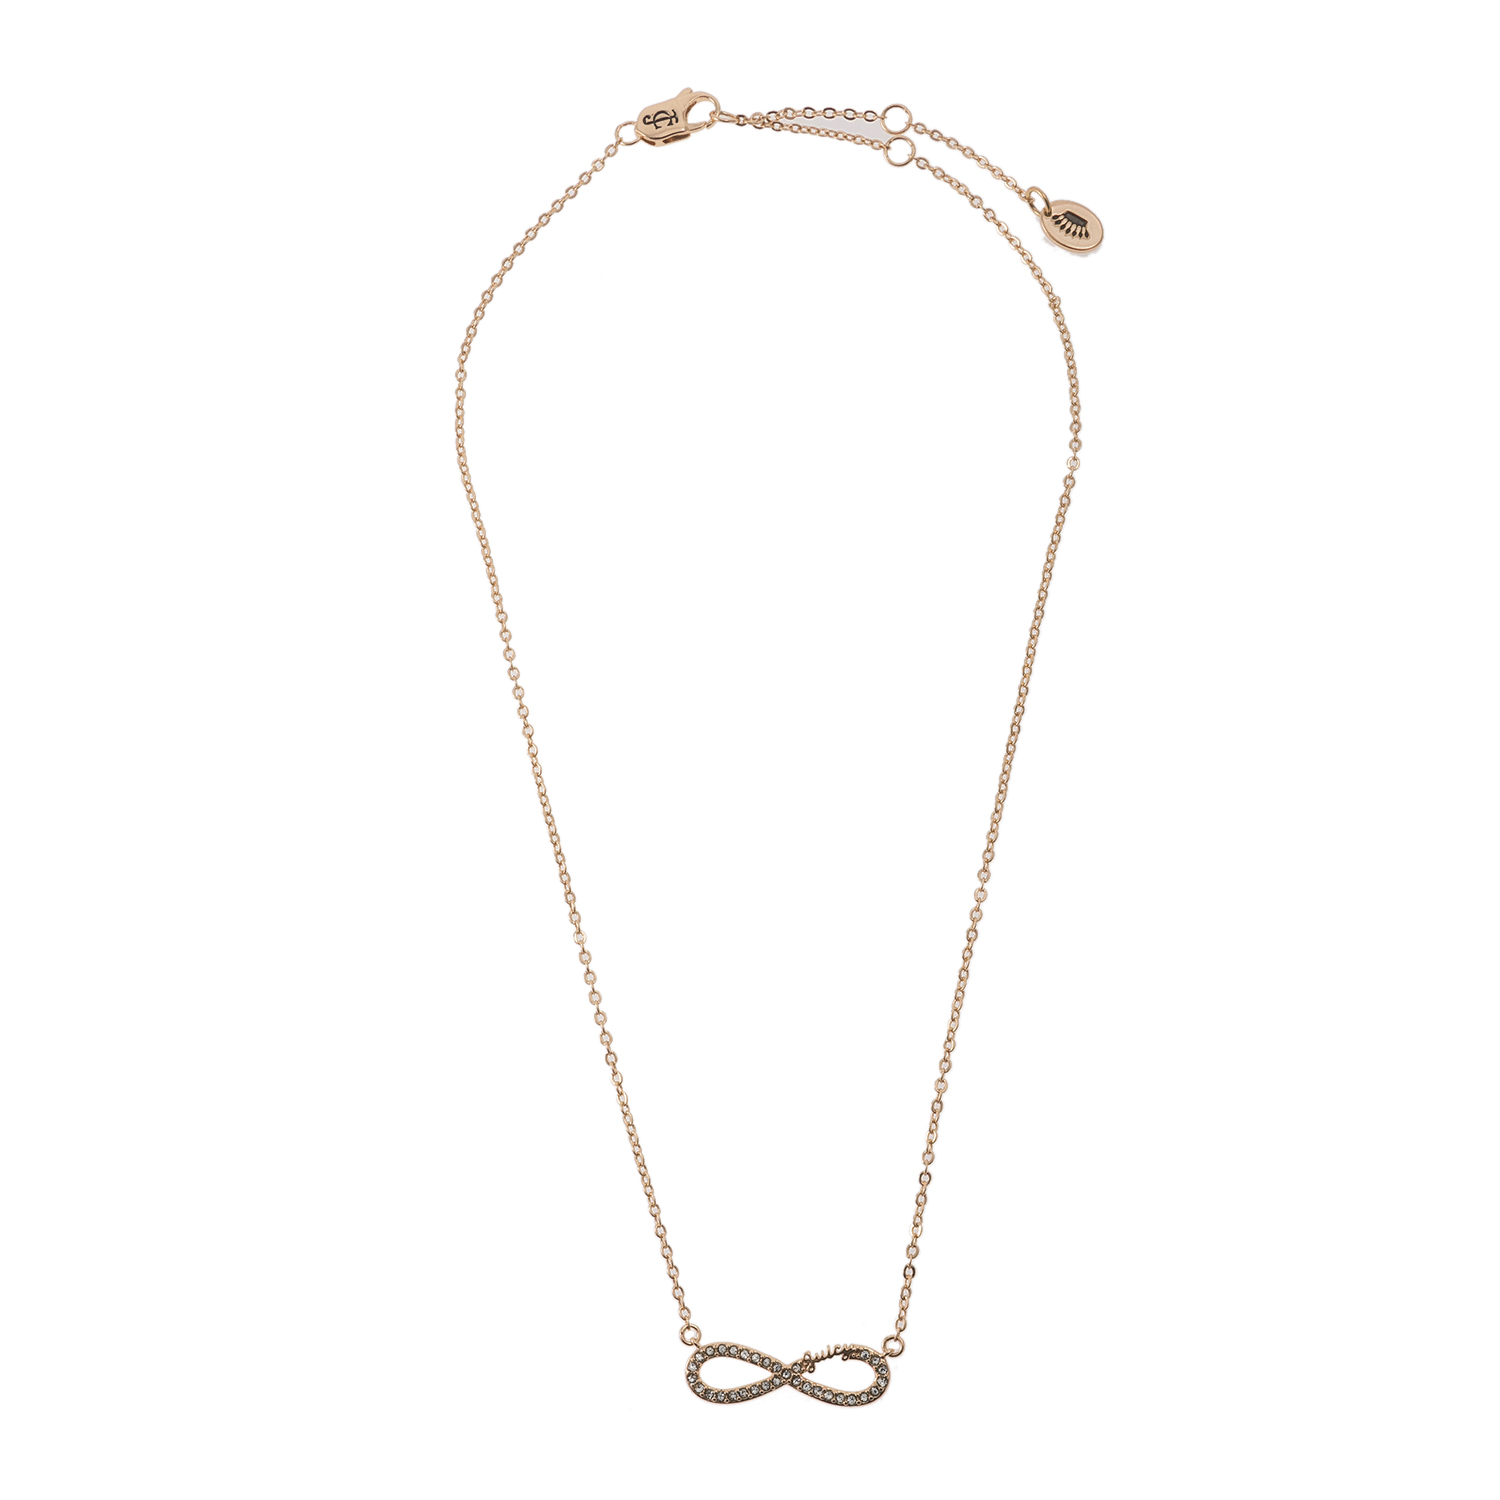 JUICY COUTURE - Κολιέ Juicy Couture Pave Infinity Luxe Wishes χρυσό γυναικεία αξεσουάρ κοσμήματα κολιέ